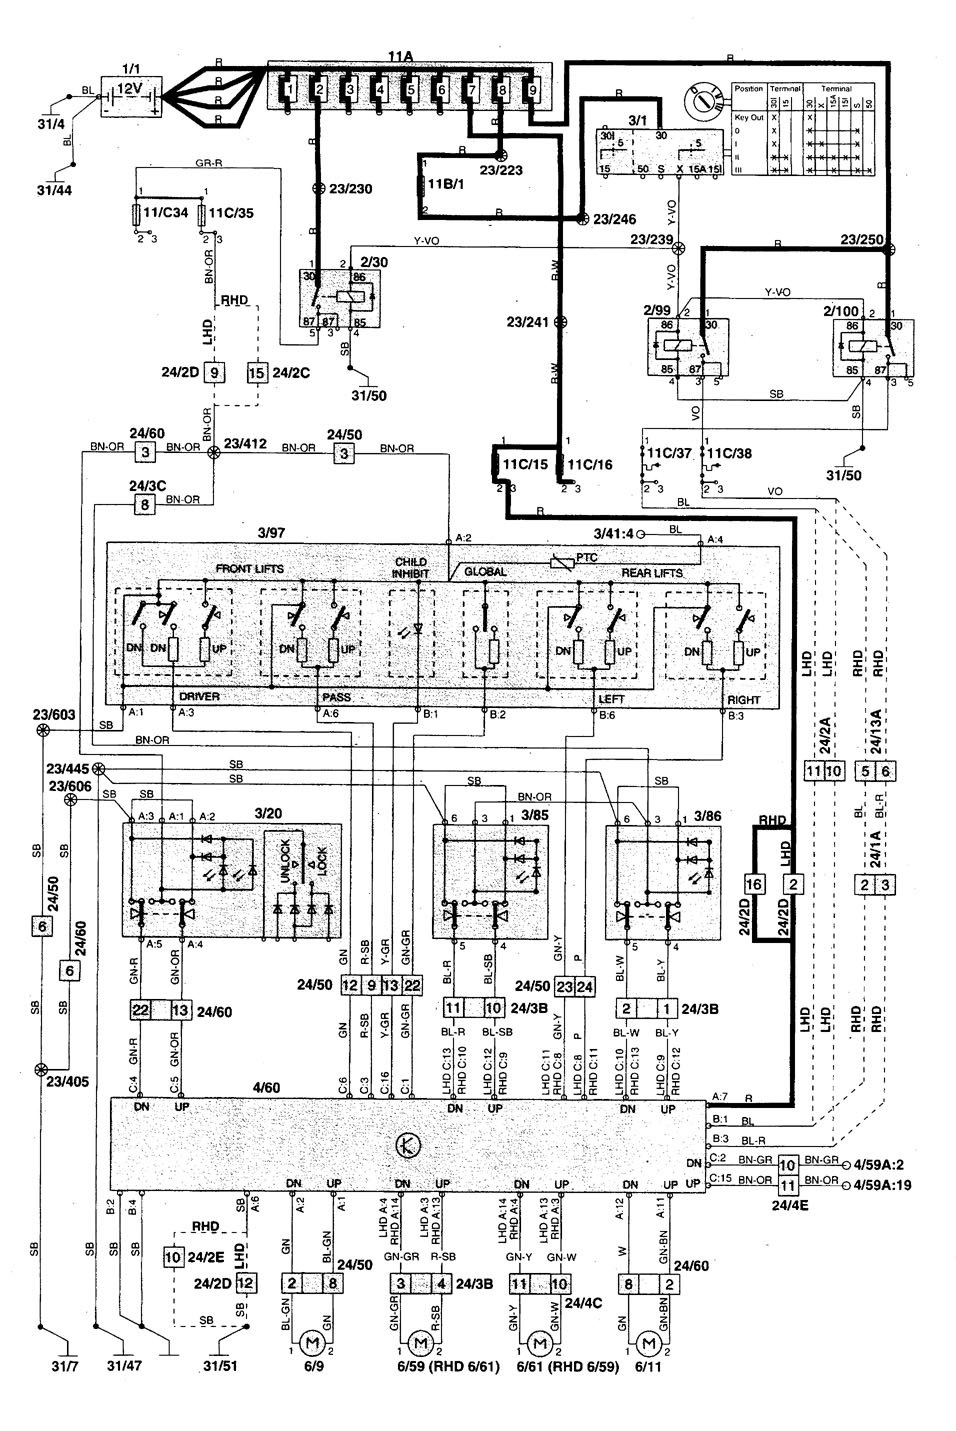 Wiring Diagram Volvo C70 Smart Diagrams Marine Engine 240 House Symbols All Kind Of U2022 Rh Investatlanta Co V70 2001